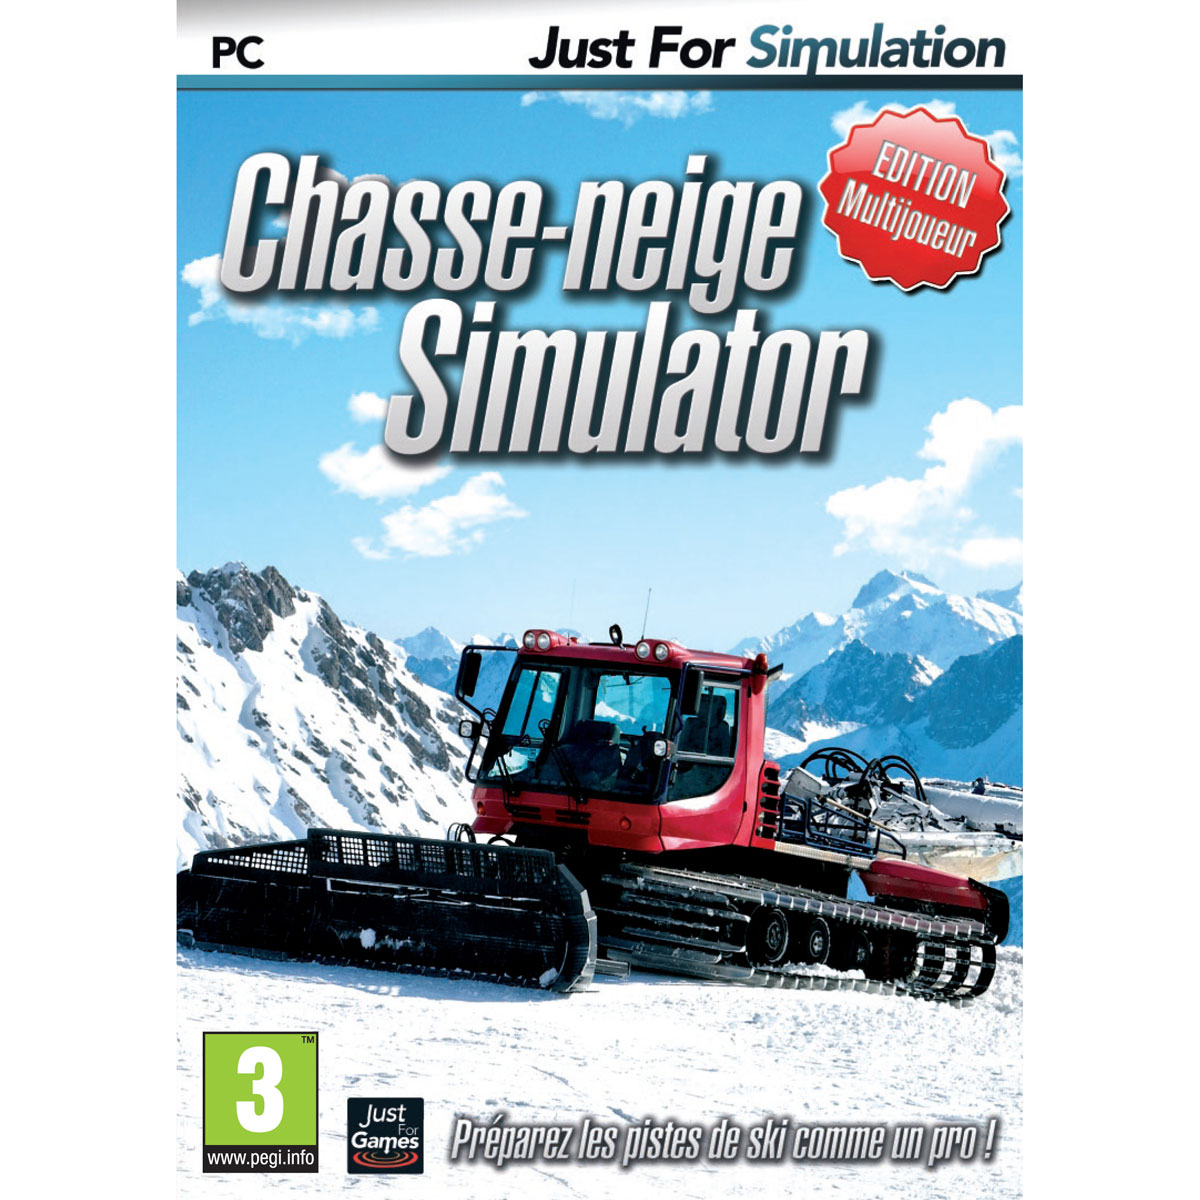 chasse neige simulator pc jeux pc just for games sur. Black Bedroom Furniture Sets. Home Design Ideas